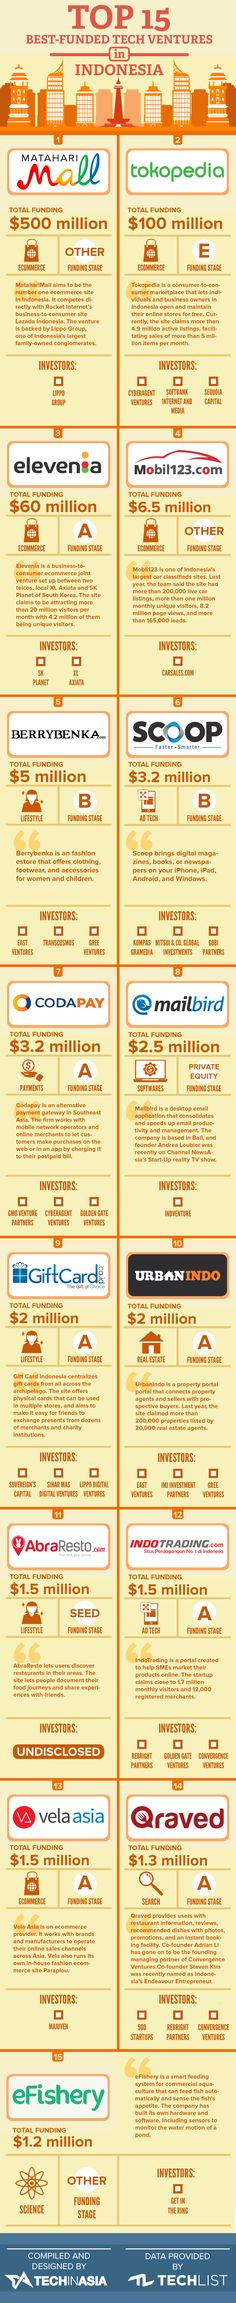 15-Most-Well-Funded-Startups-(Indonesia) (2)